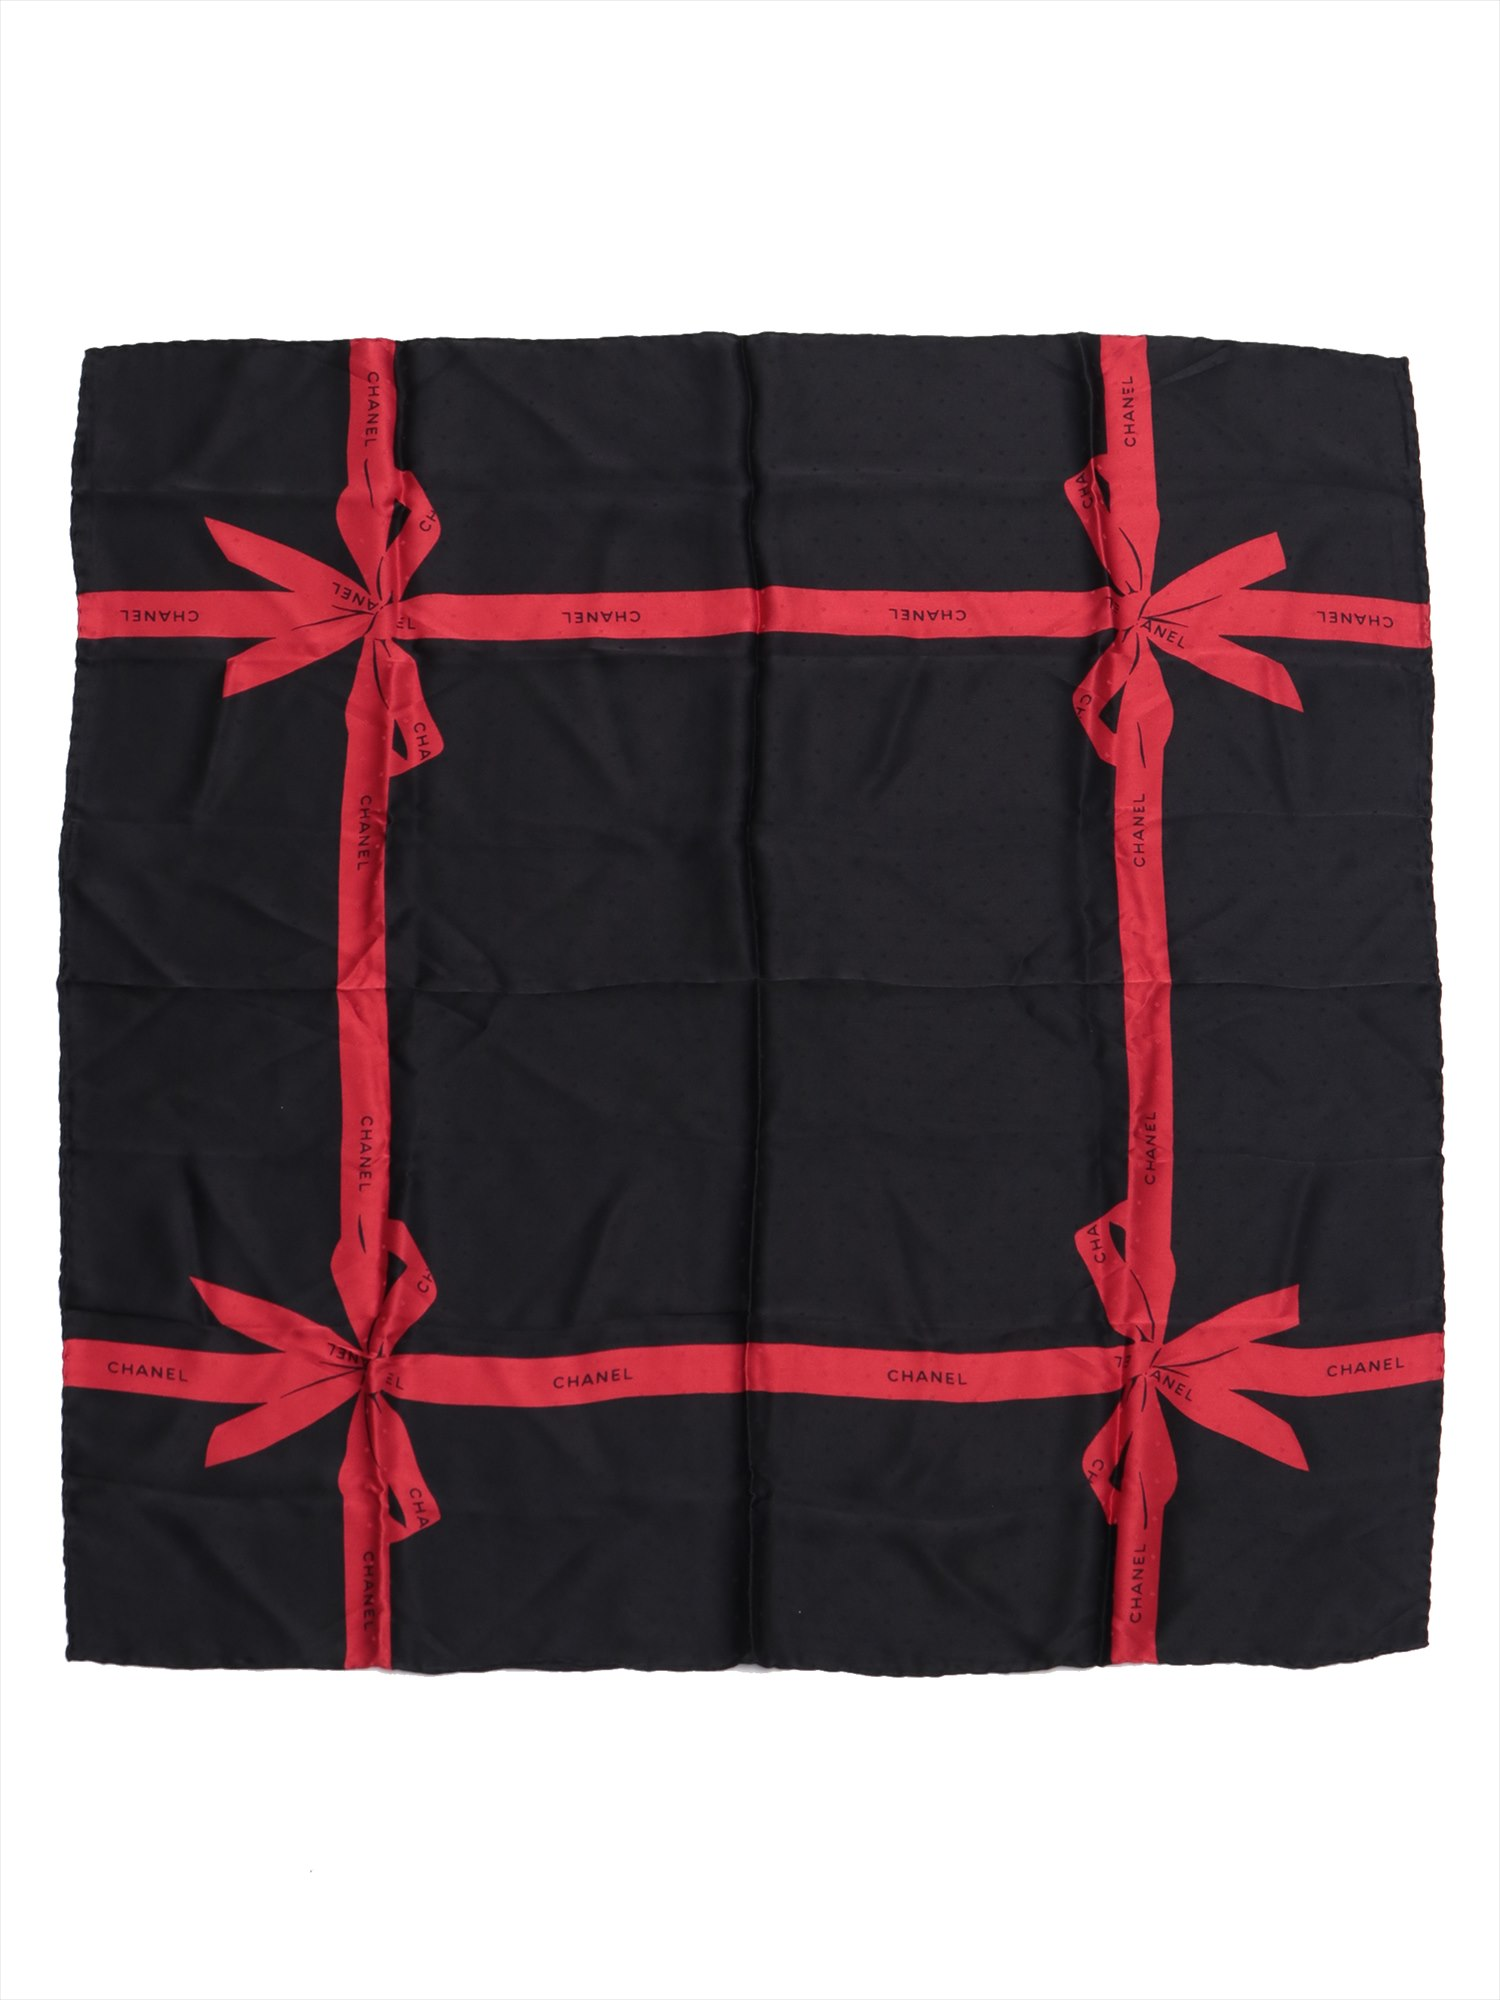 [Used goods] Chanel scarf silk black ribbon pattern